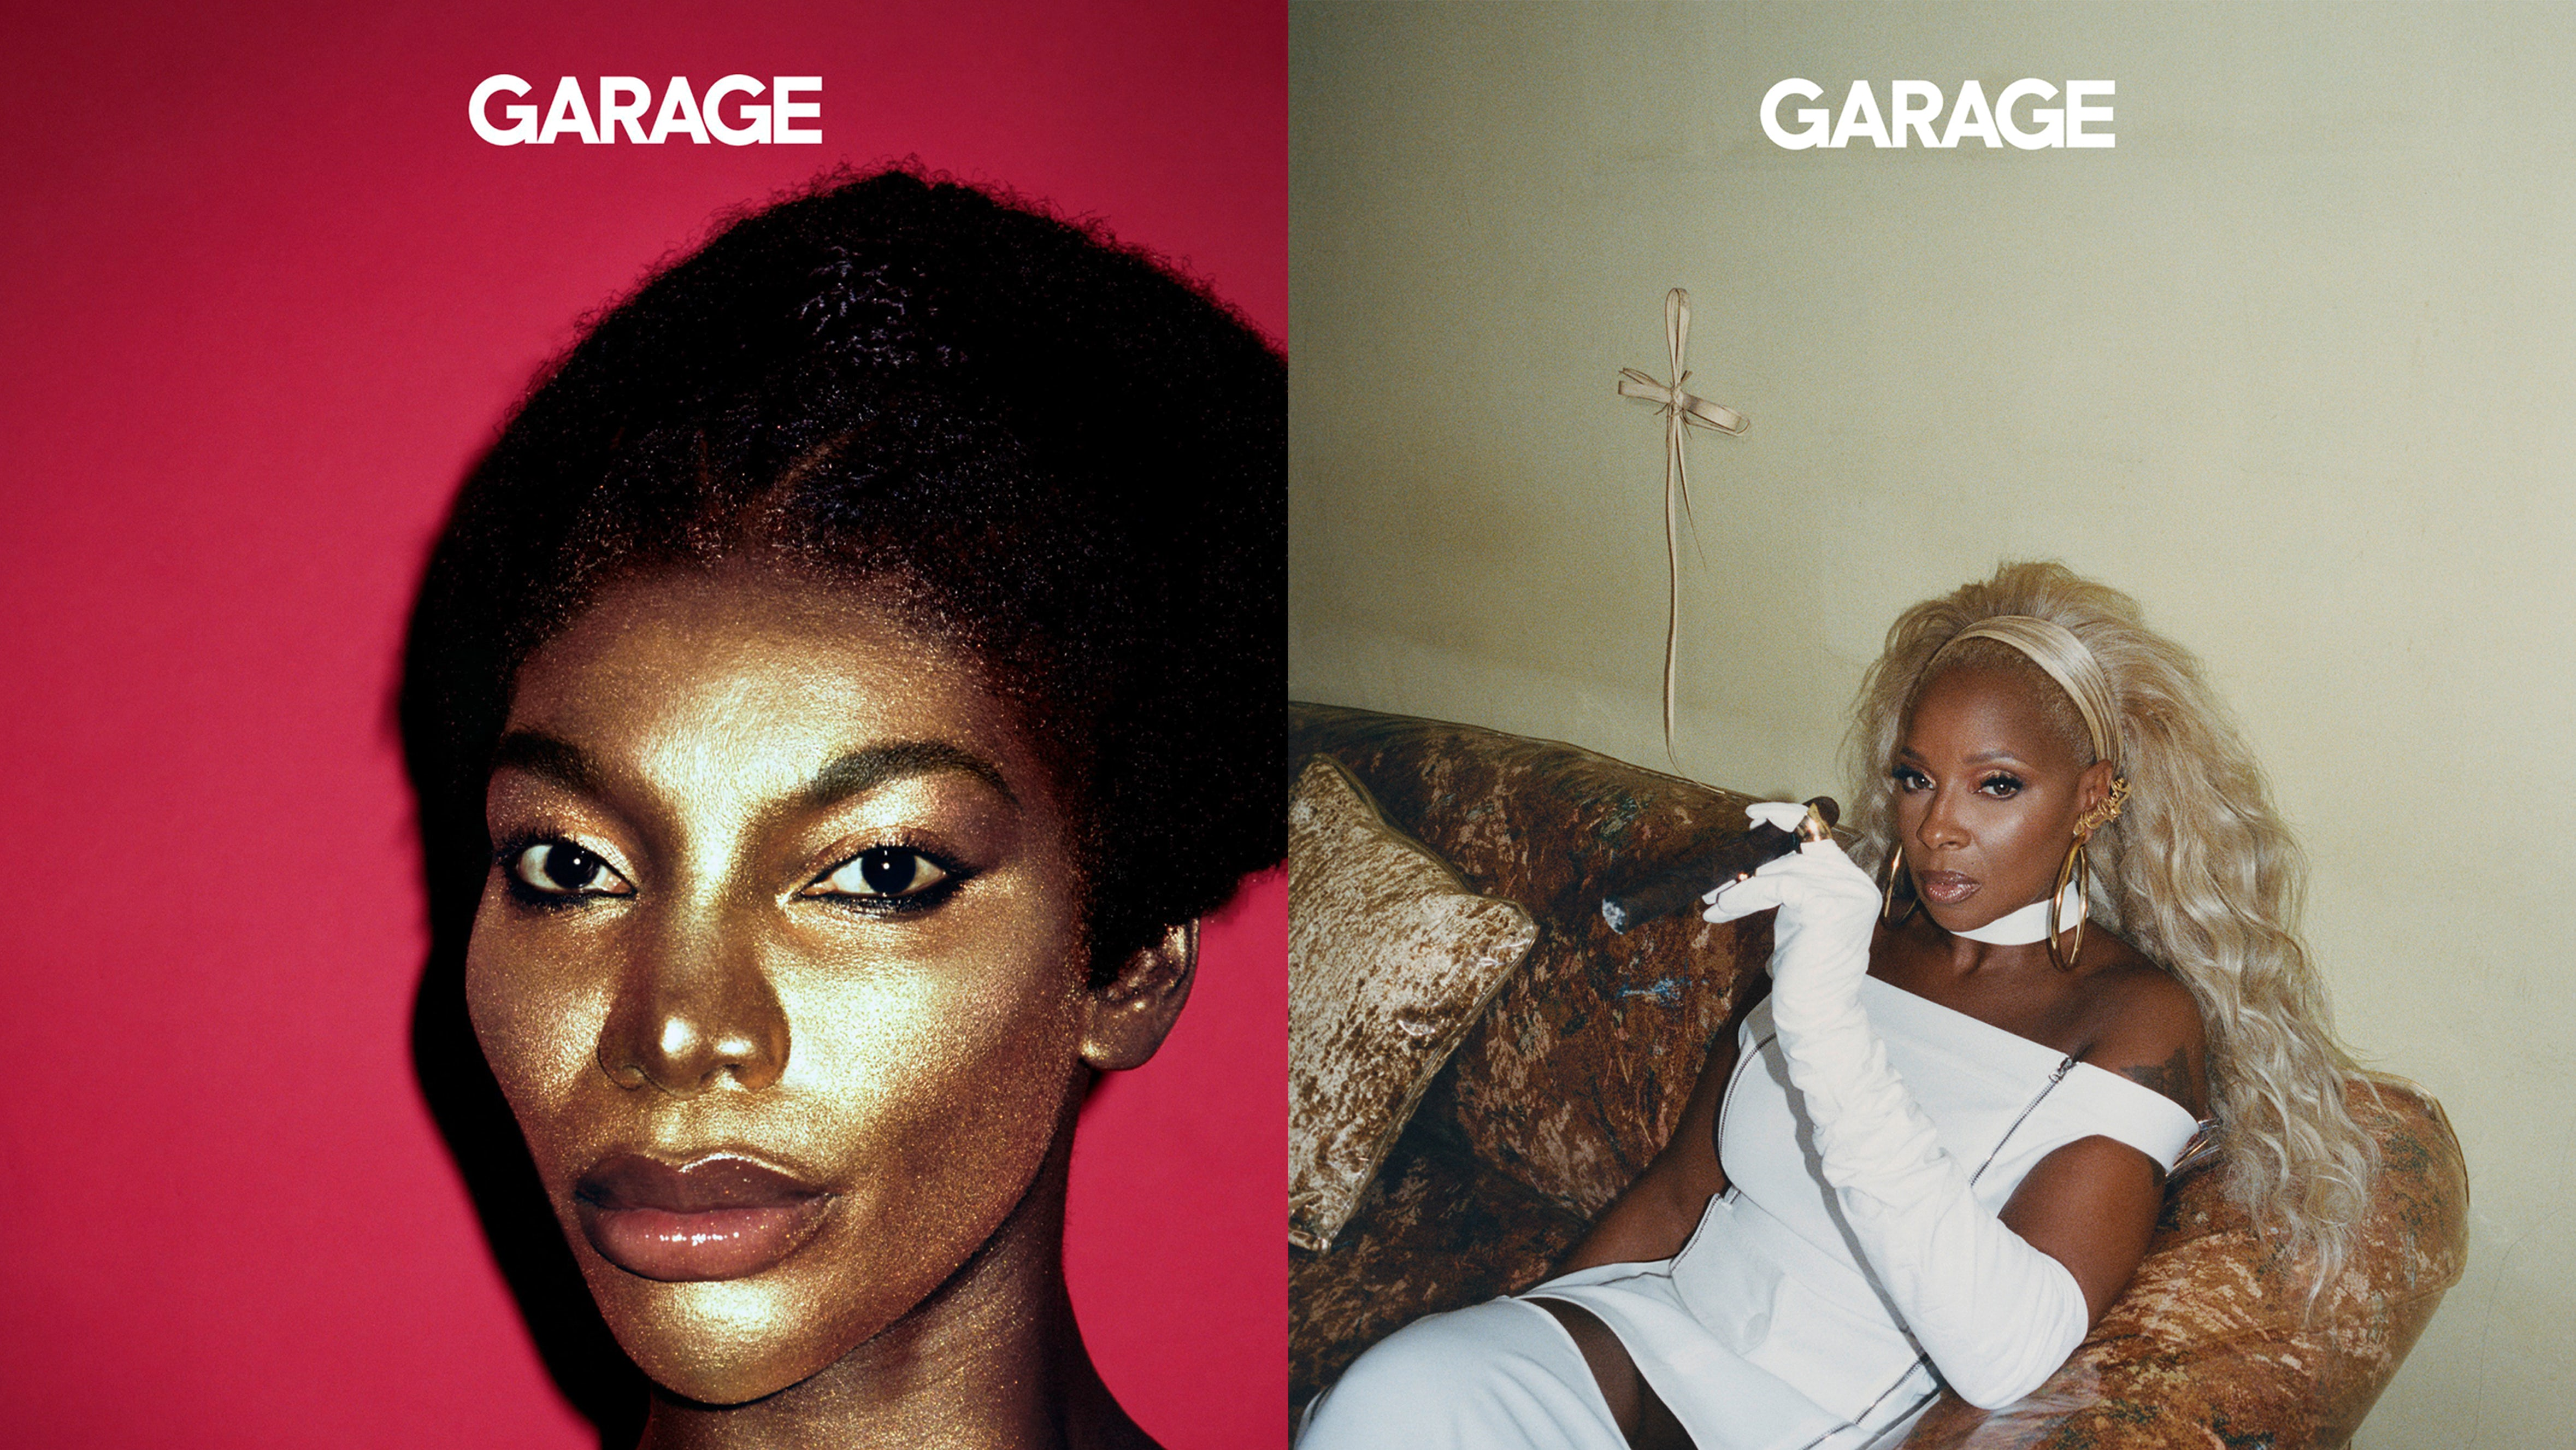 Garage Magazine Issue 19 featured Michaela Coel and Mary J. Blige. Garage Magazine.